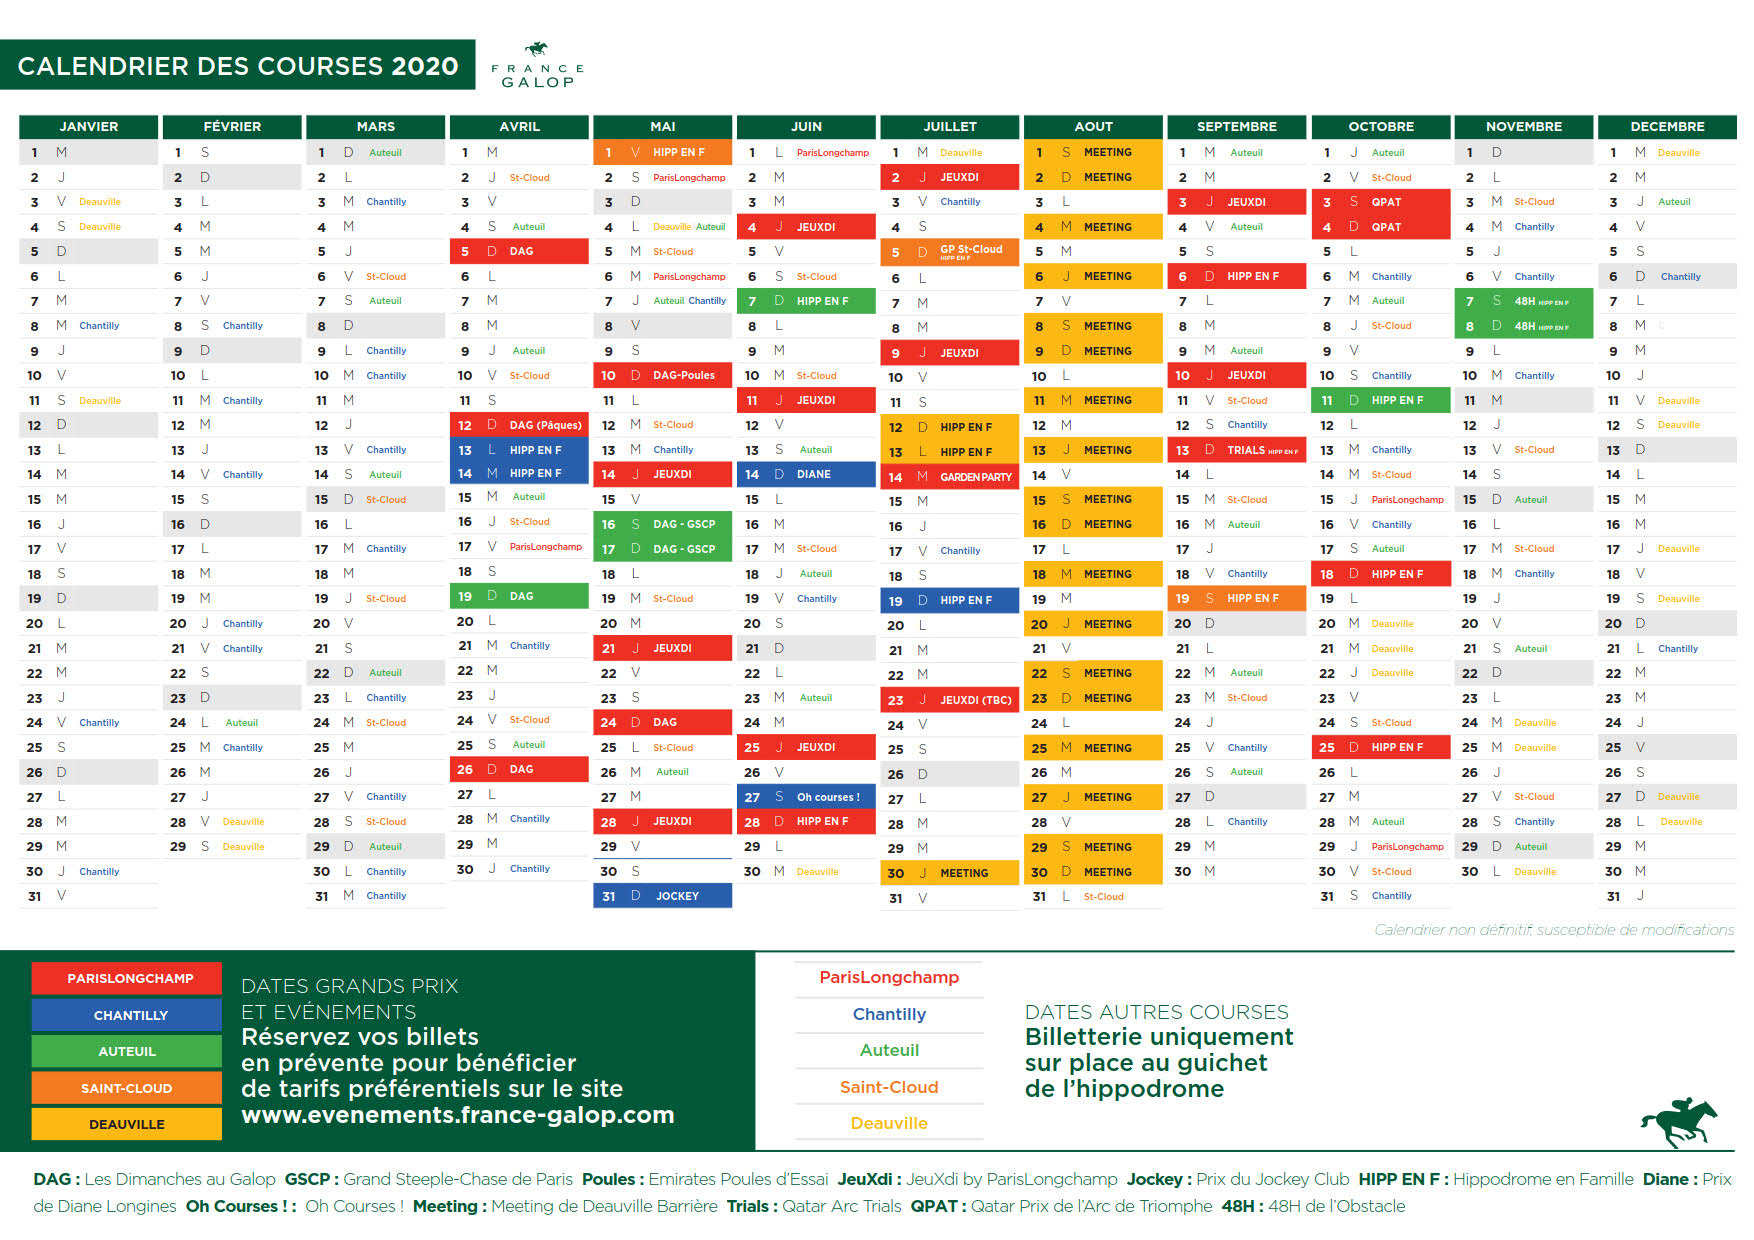 CALENDRIER_VDEF_1.jpg